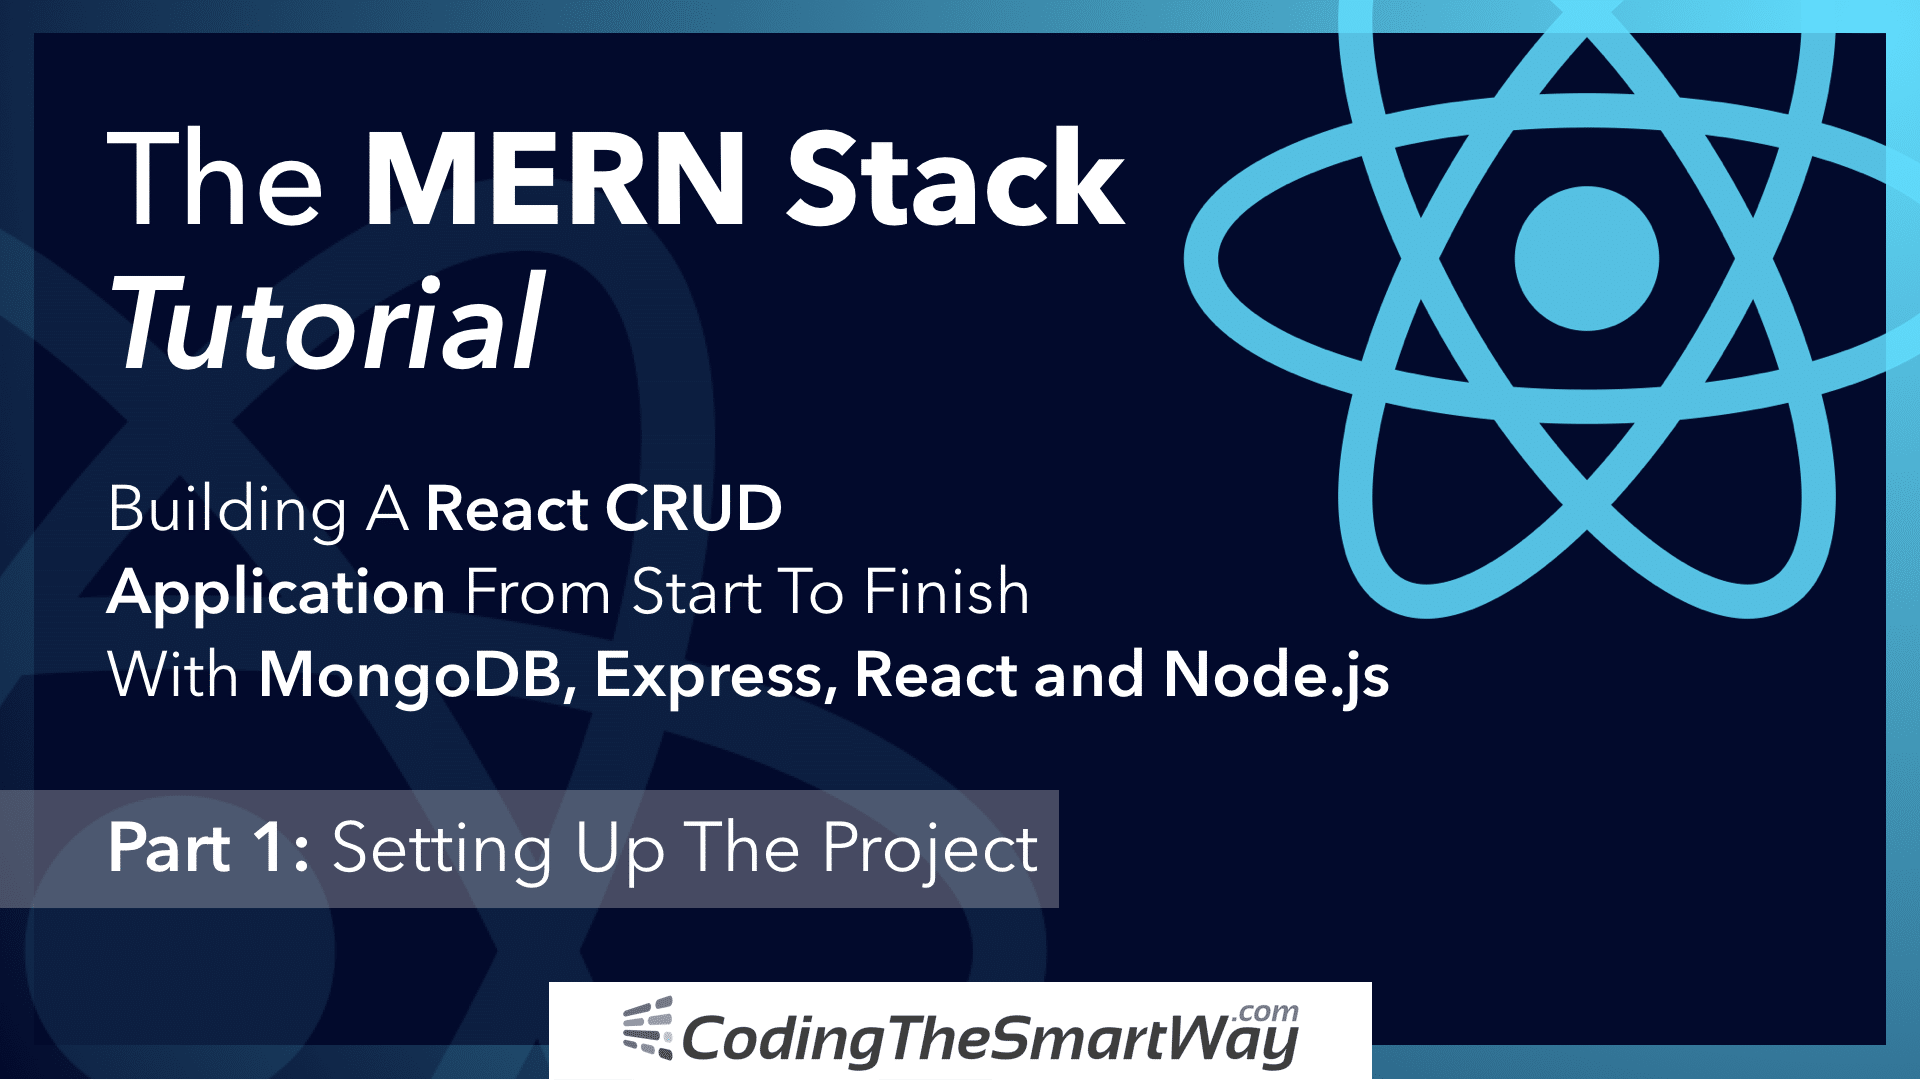 The MERN Stack Tutorial - Building A React CRUD Application From